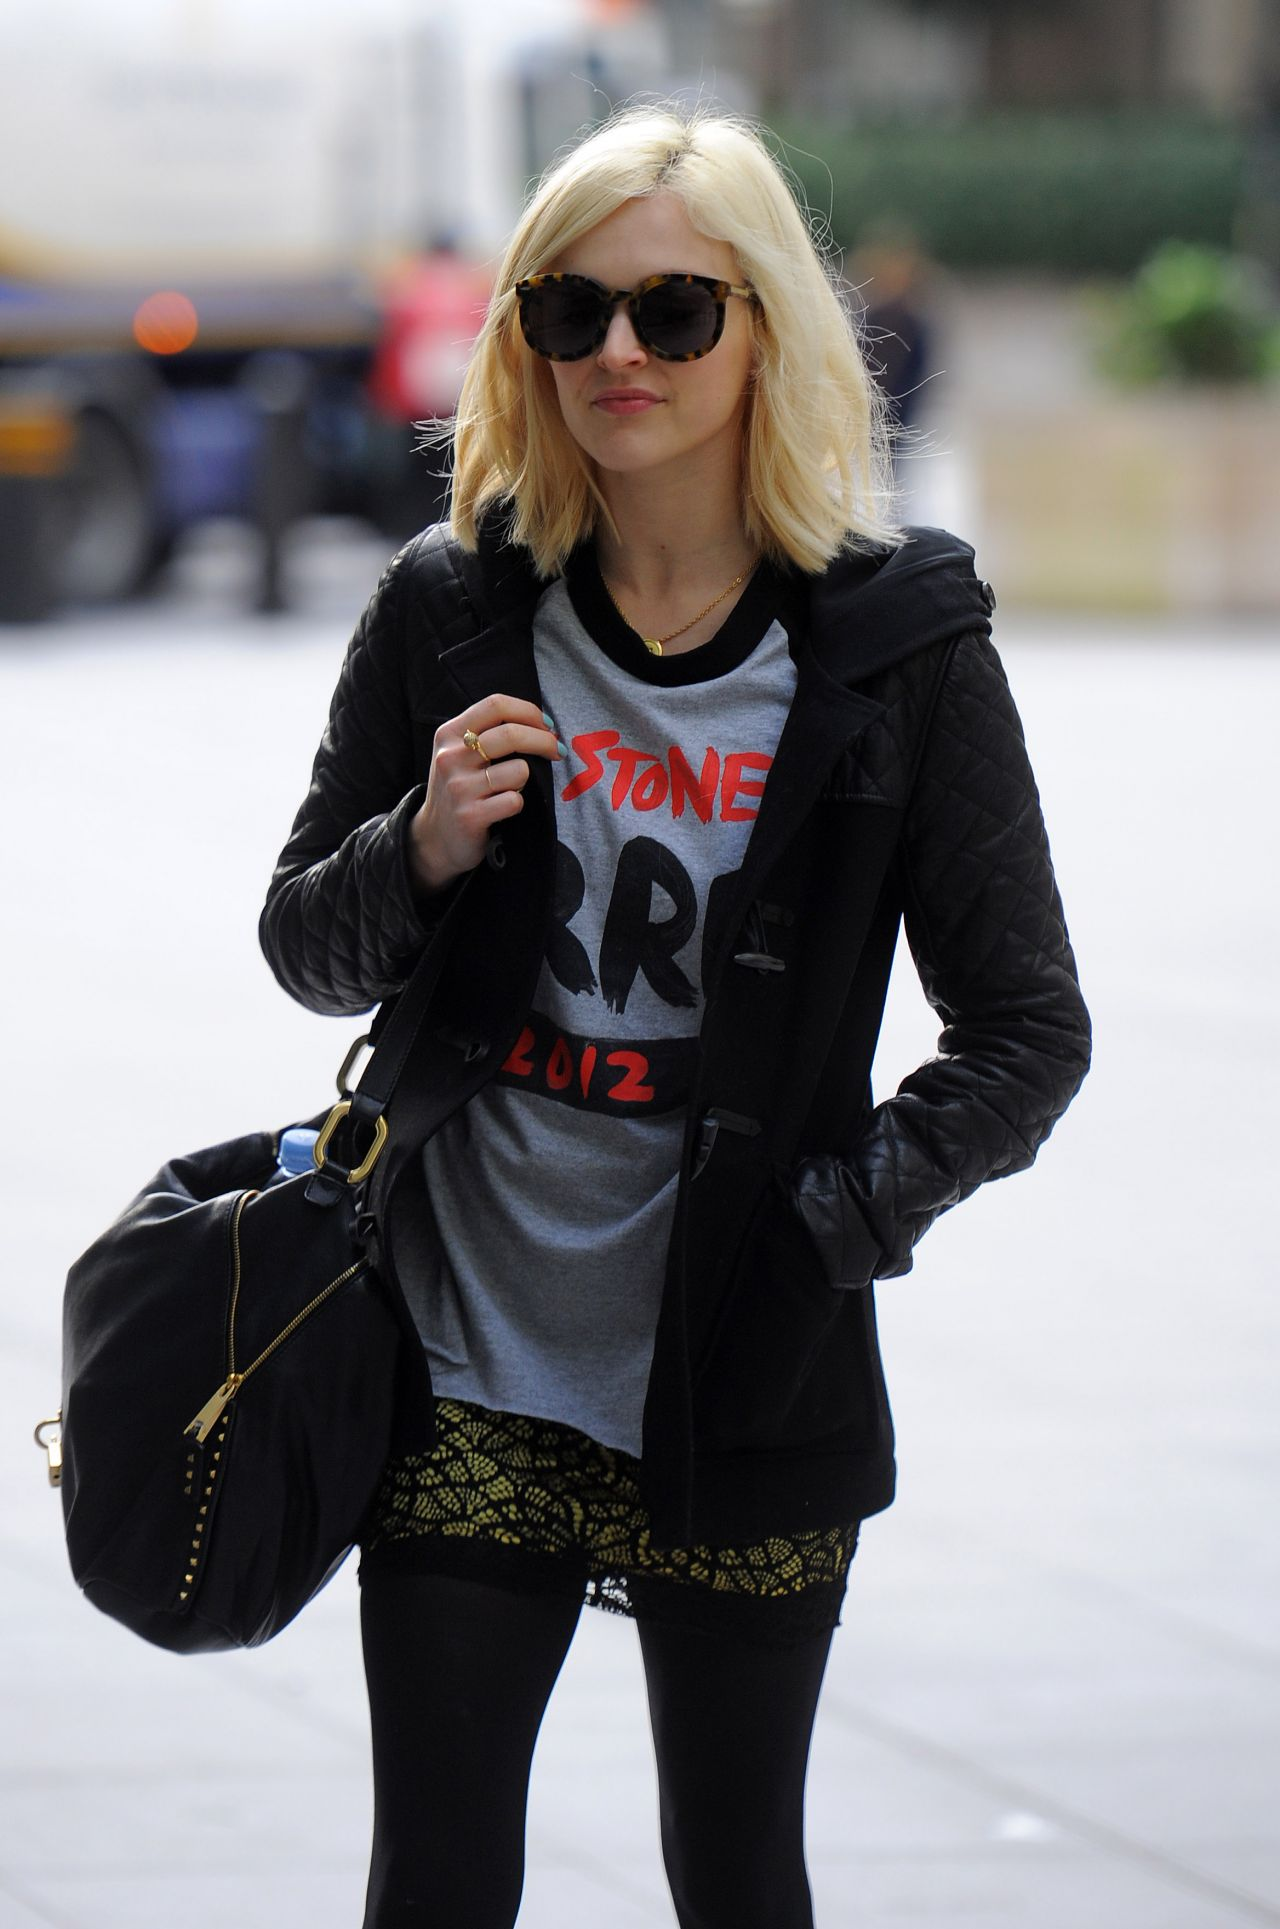 Fearne Cotton Street Style - Arriving to the BBC Radio 1 Studios in London - February 2014